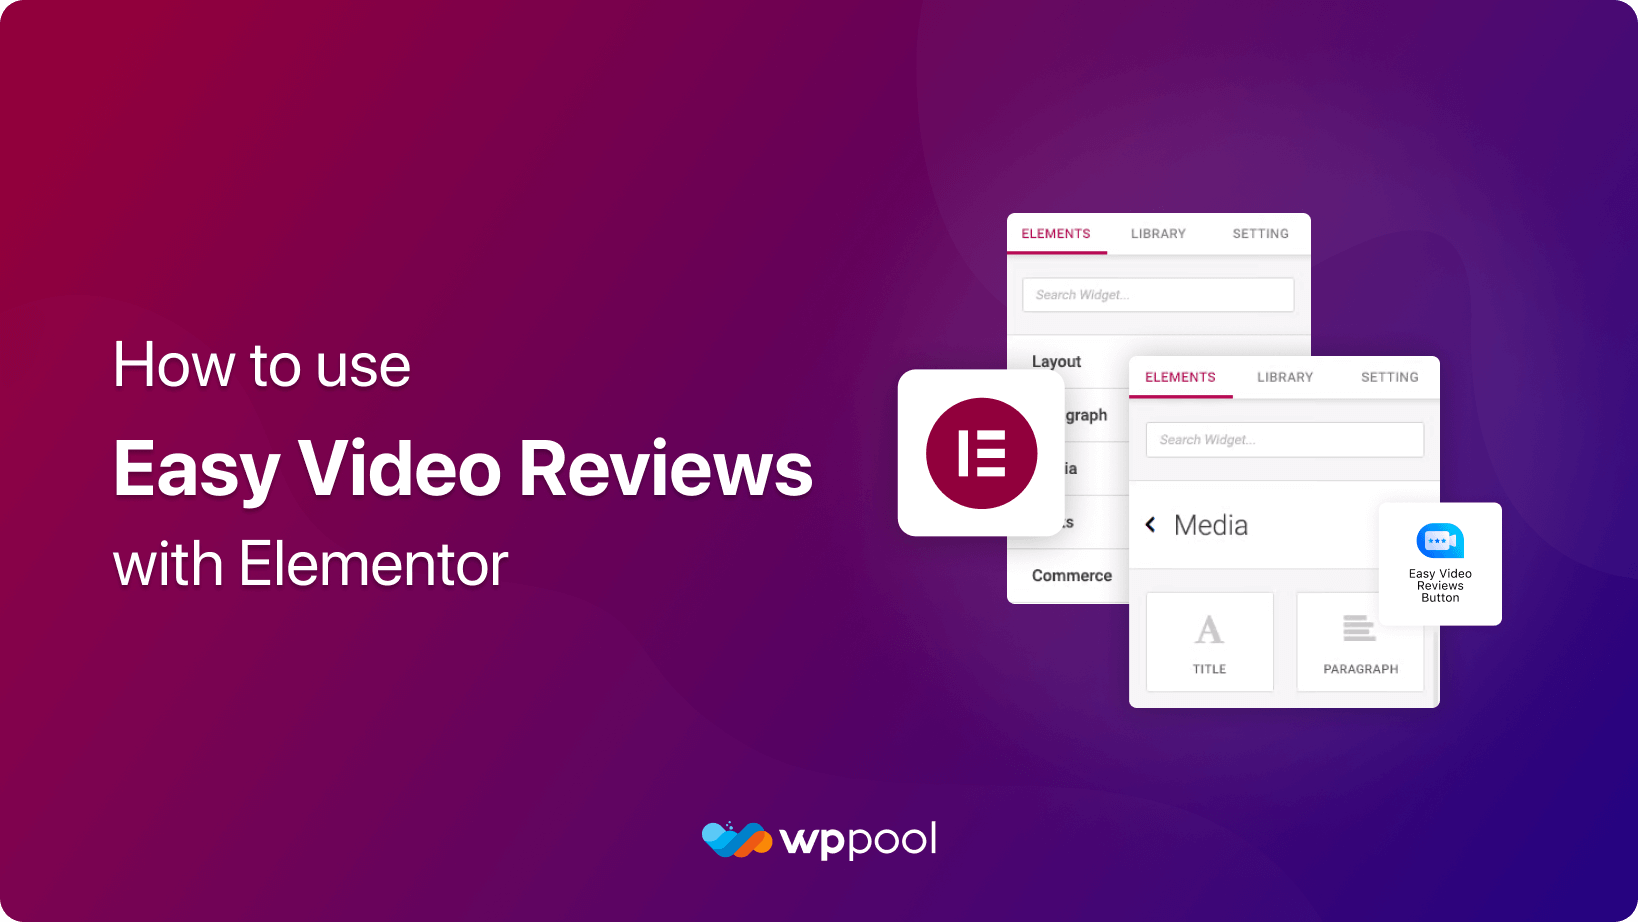 How to Use Easy Video Reviews with Elementor